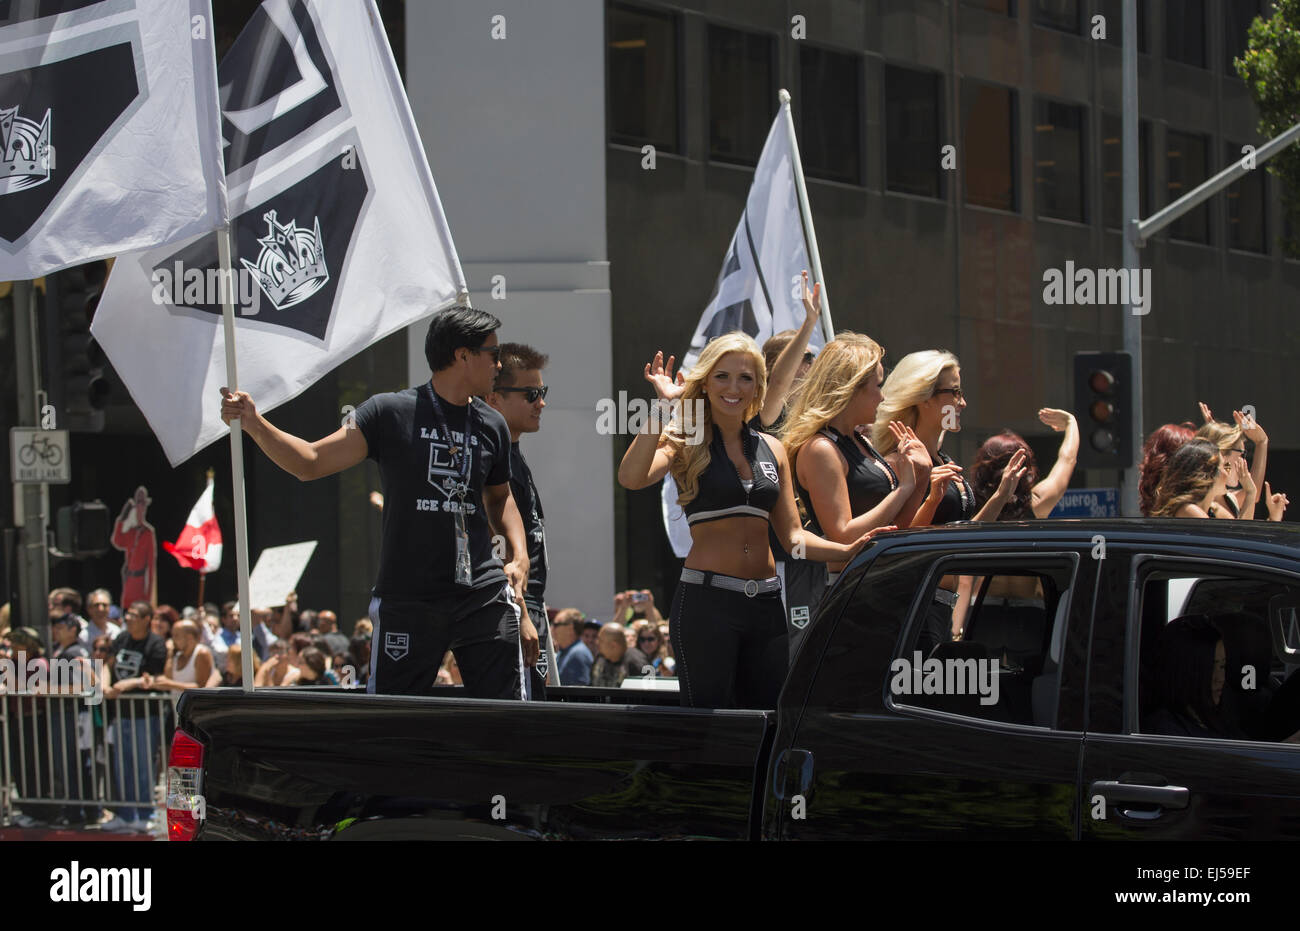 Cheerleaders at LA Kings 2014 Stanley Cup Victory Parade, Los Angeles, California, USA - Stock Image